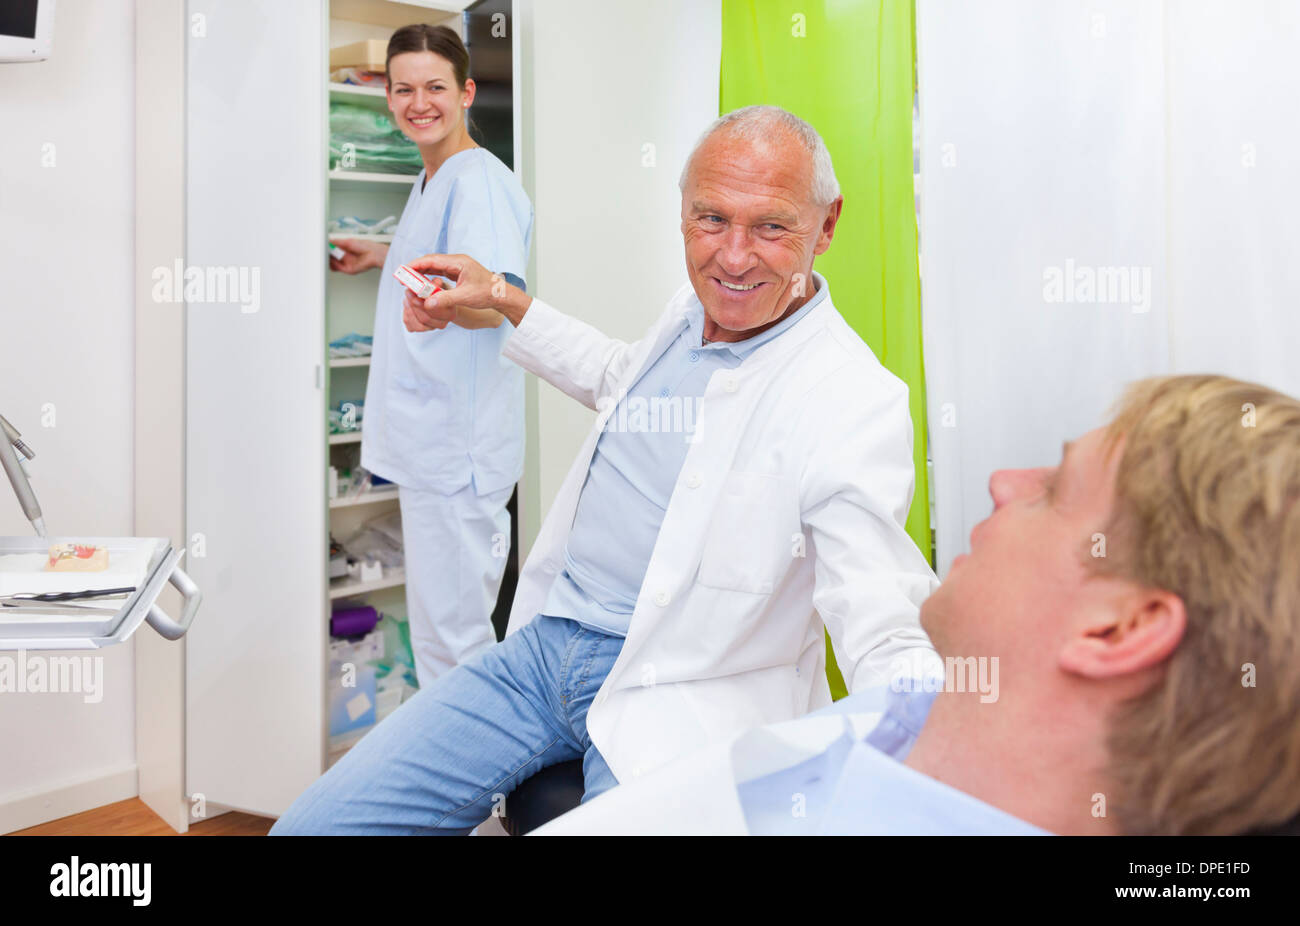 Male dentist treating male patient - Stock Image